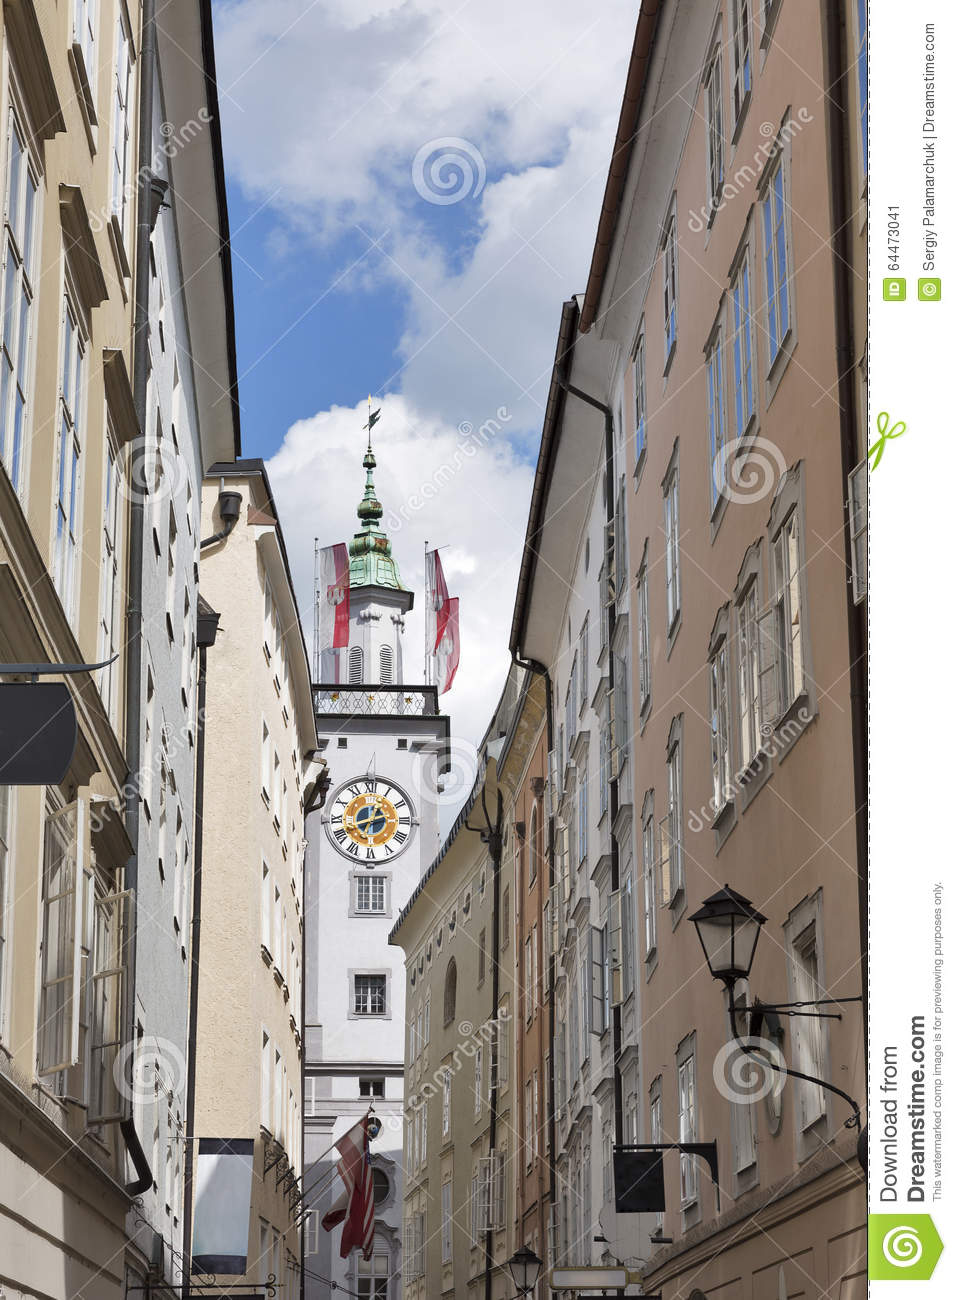 Clock Tower Of Old Town Hall With Flags In Salzburg, Austria.